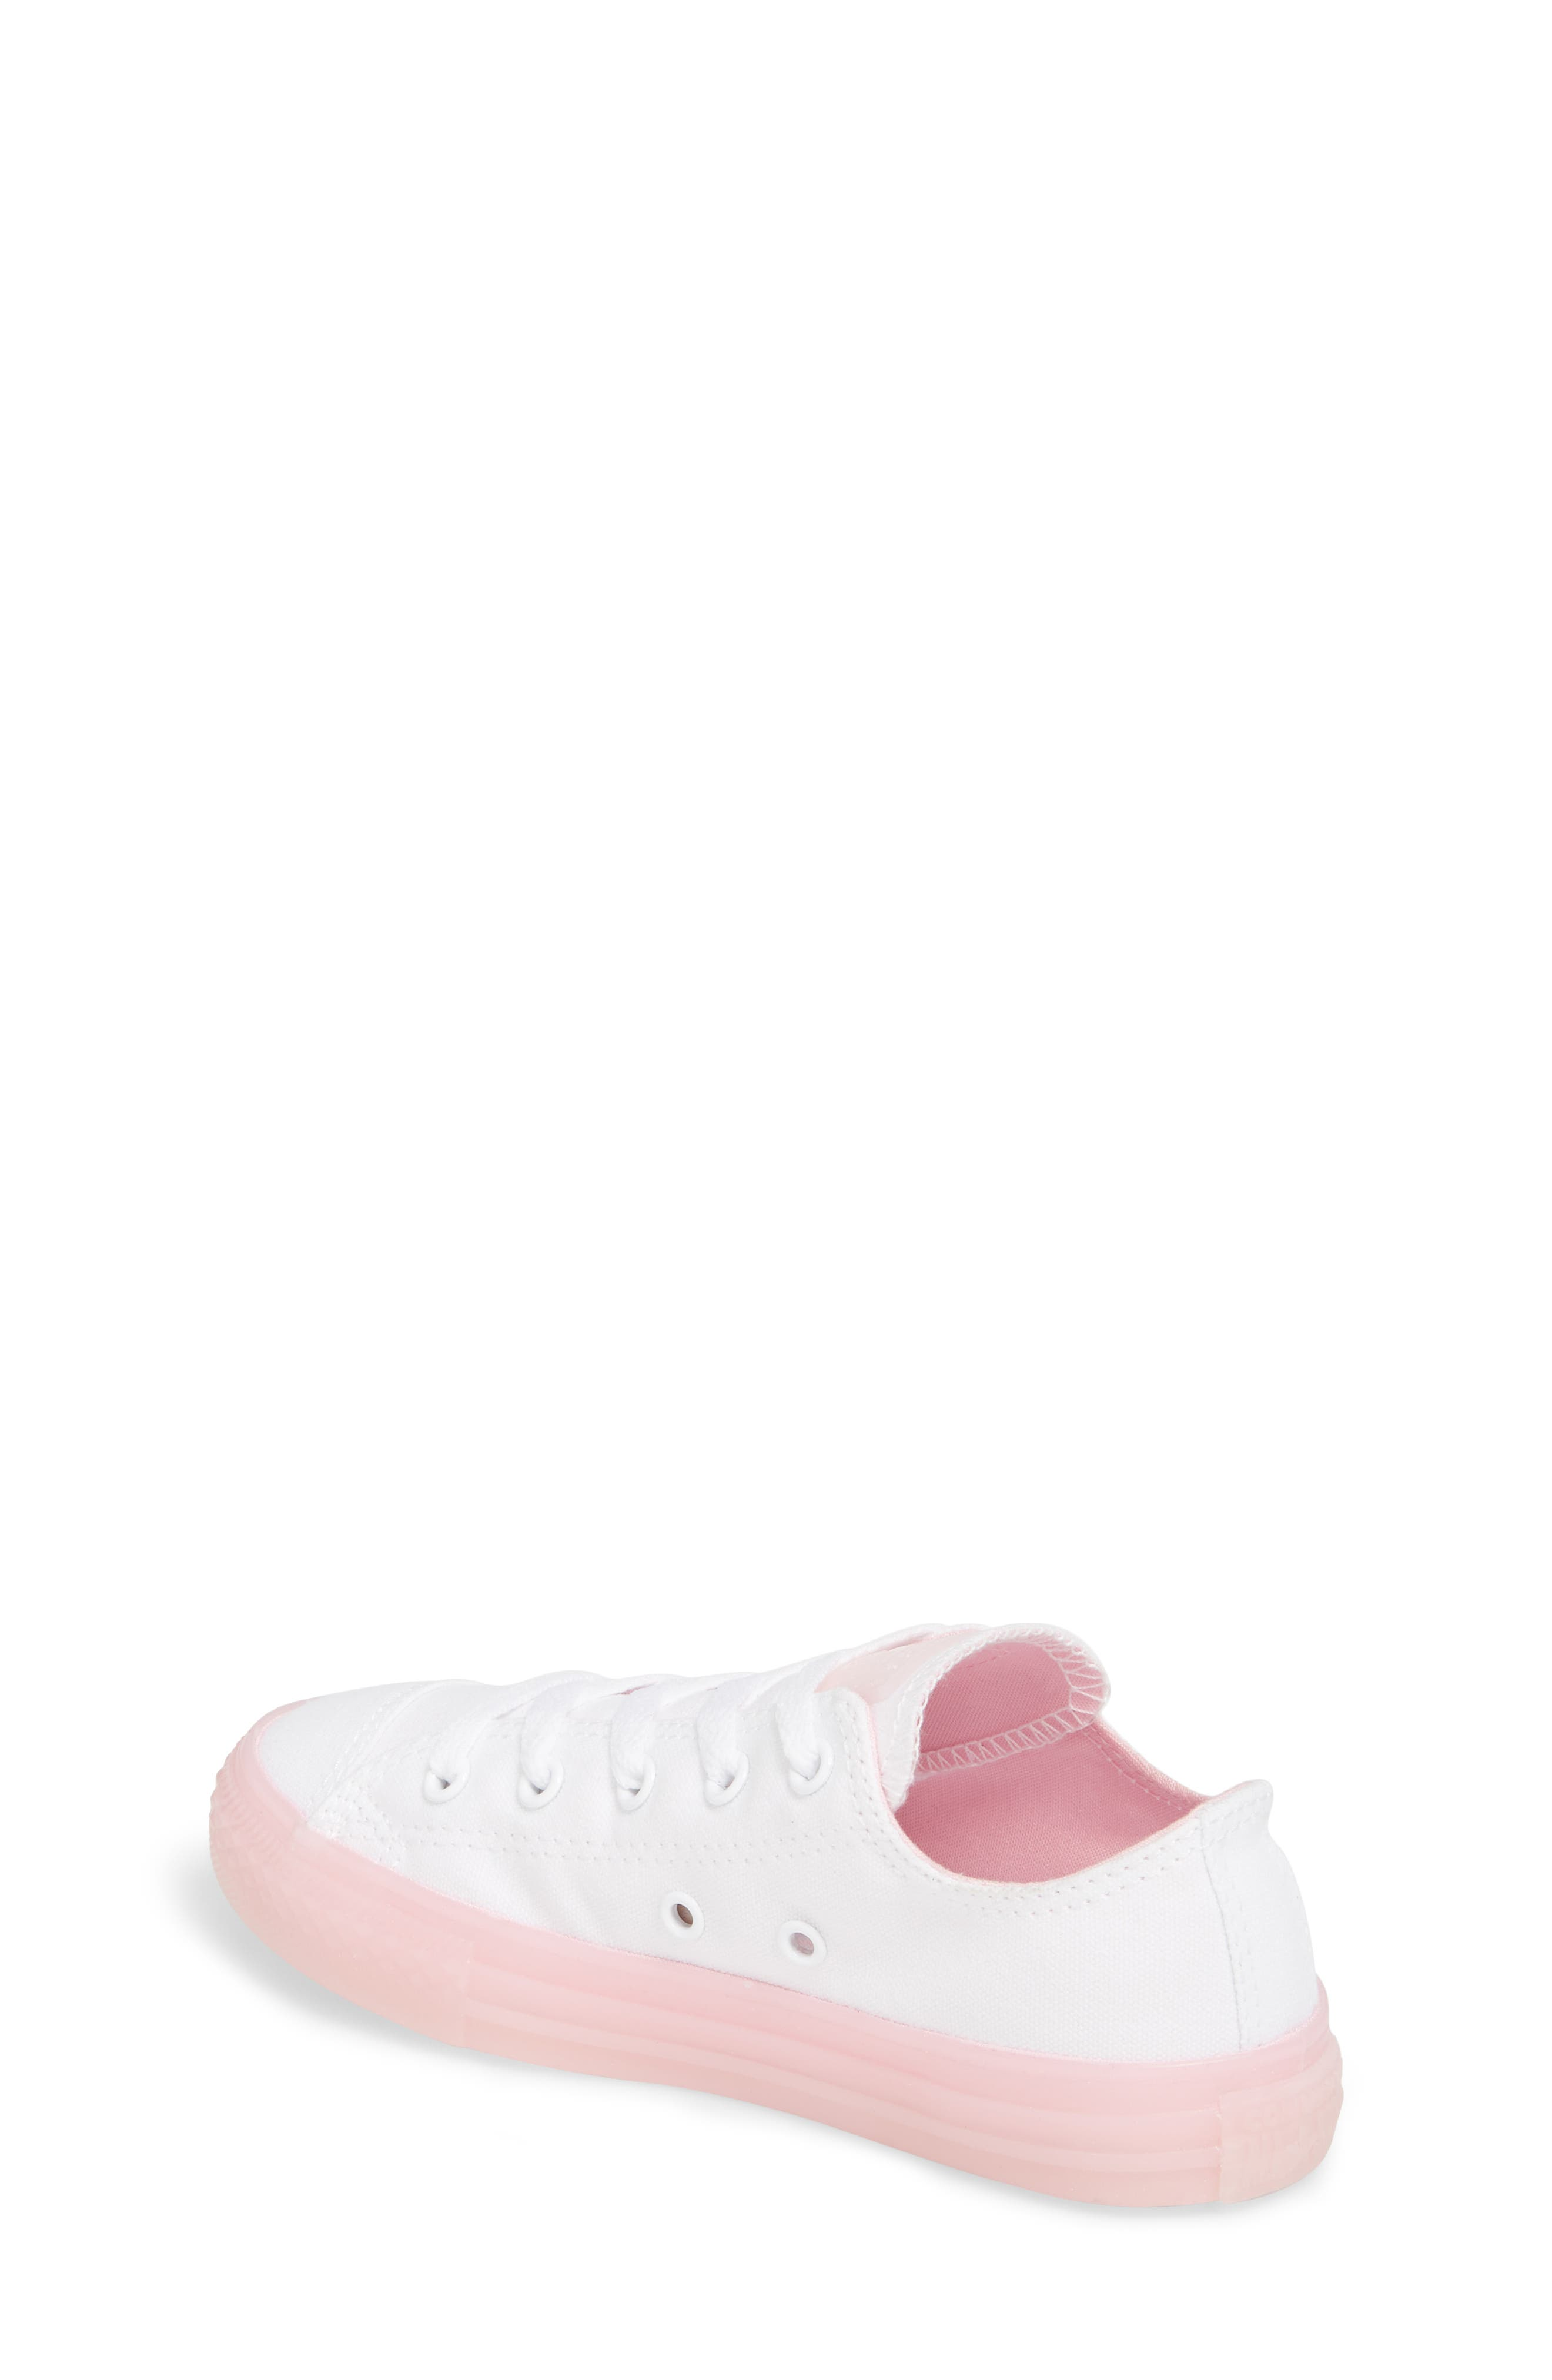 Chuck Taylor<sup>®</sup> All Star<sup>®</sup> Jelly Low Top Sneaker,                             Alternate thumbnail 2, color,                             WHITE/ CHERRY